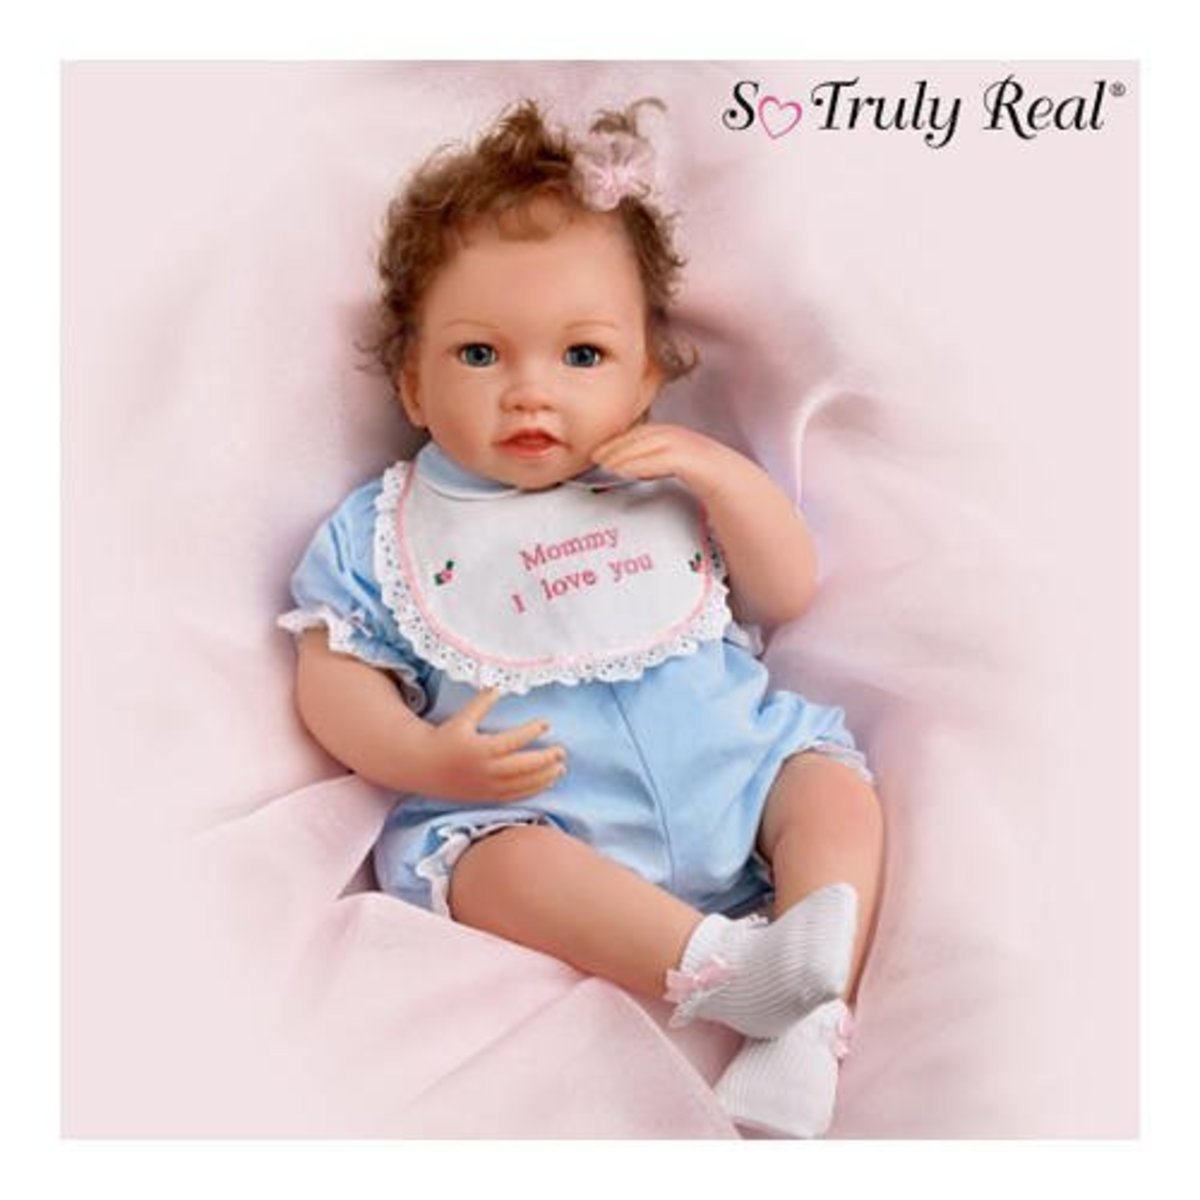 This is one of the realistic dolls available.